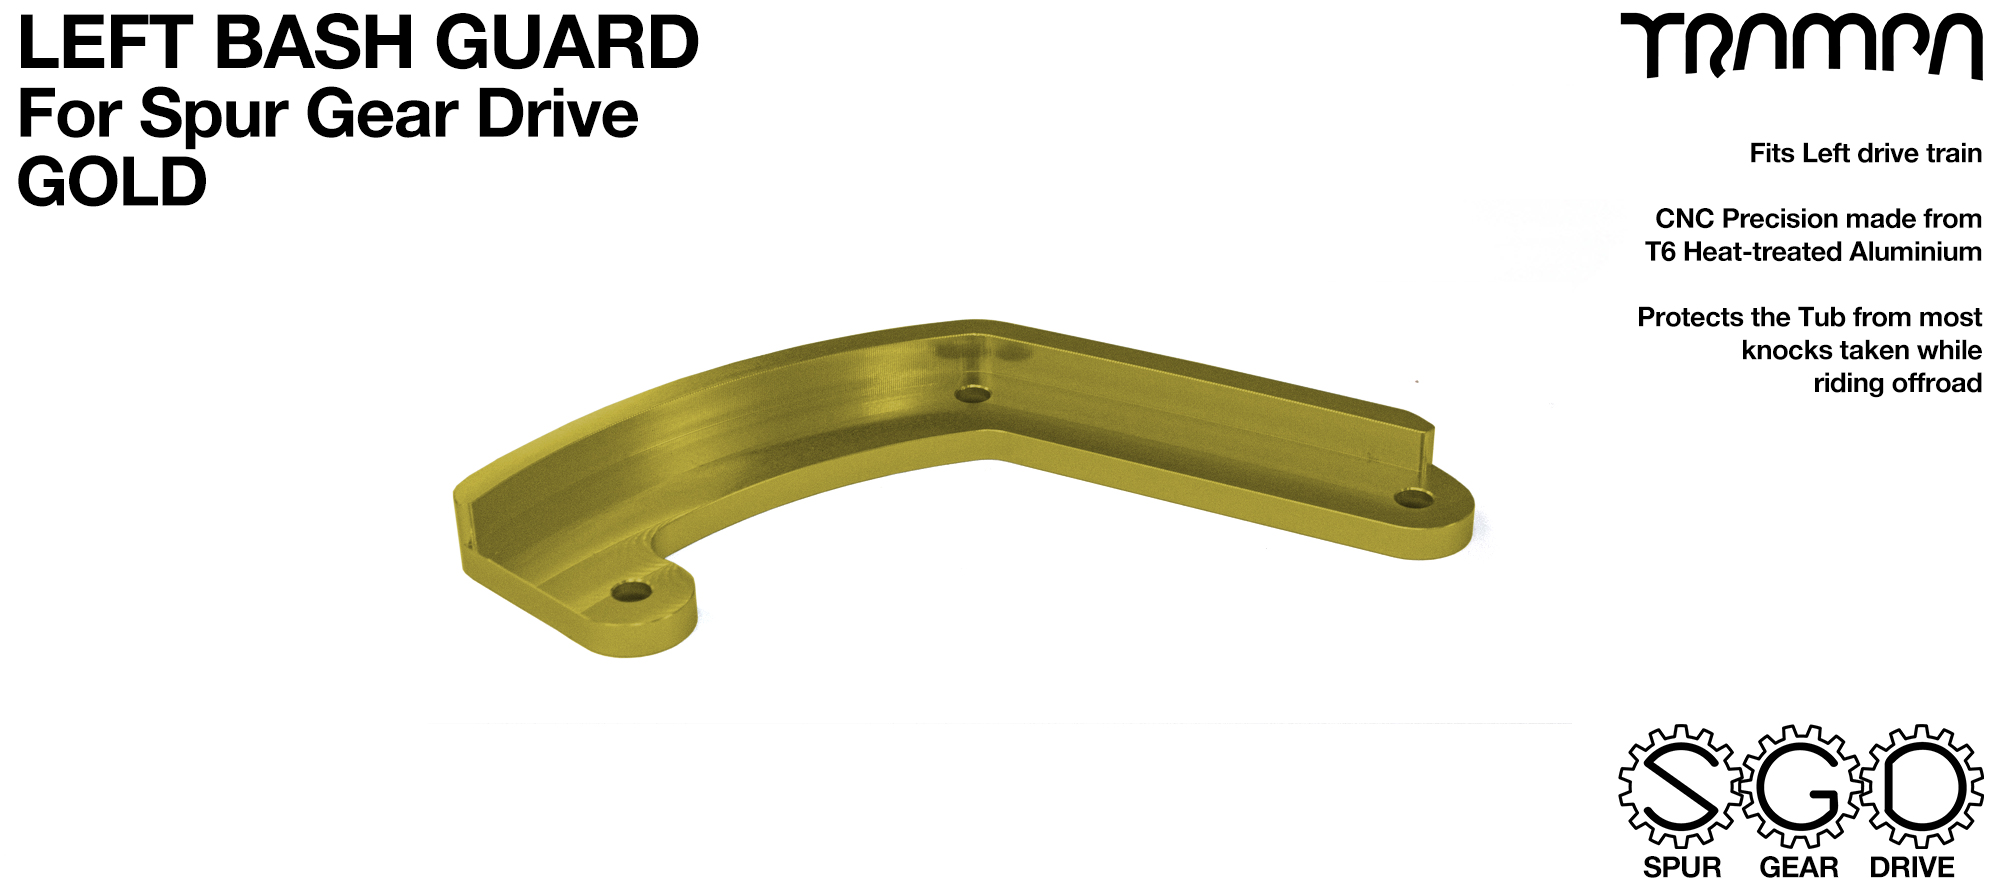 MkII Spur Gear Drive Bash Guard - LEFT Side - GOLD